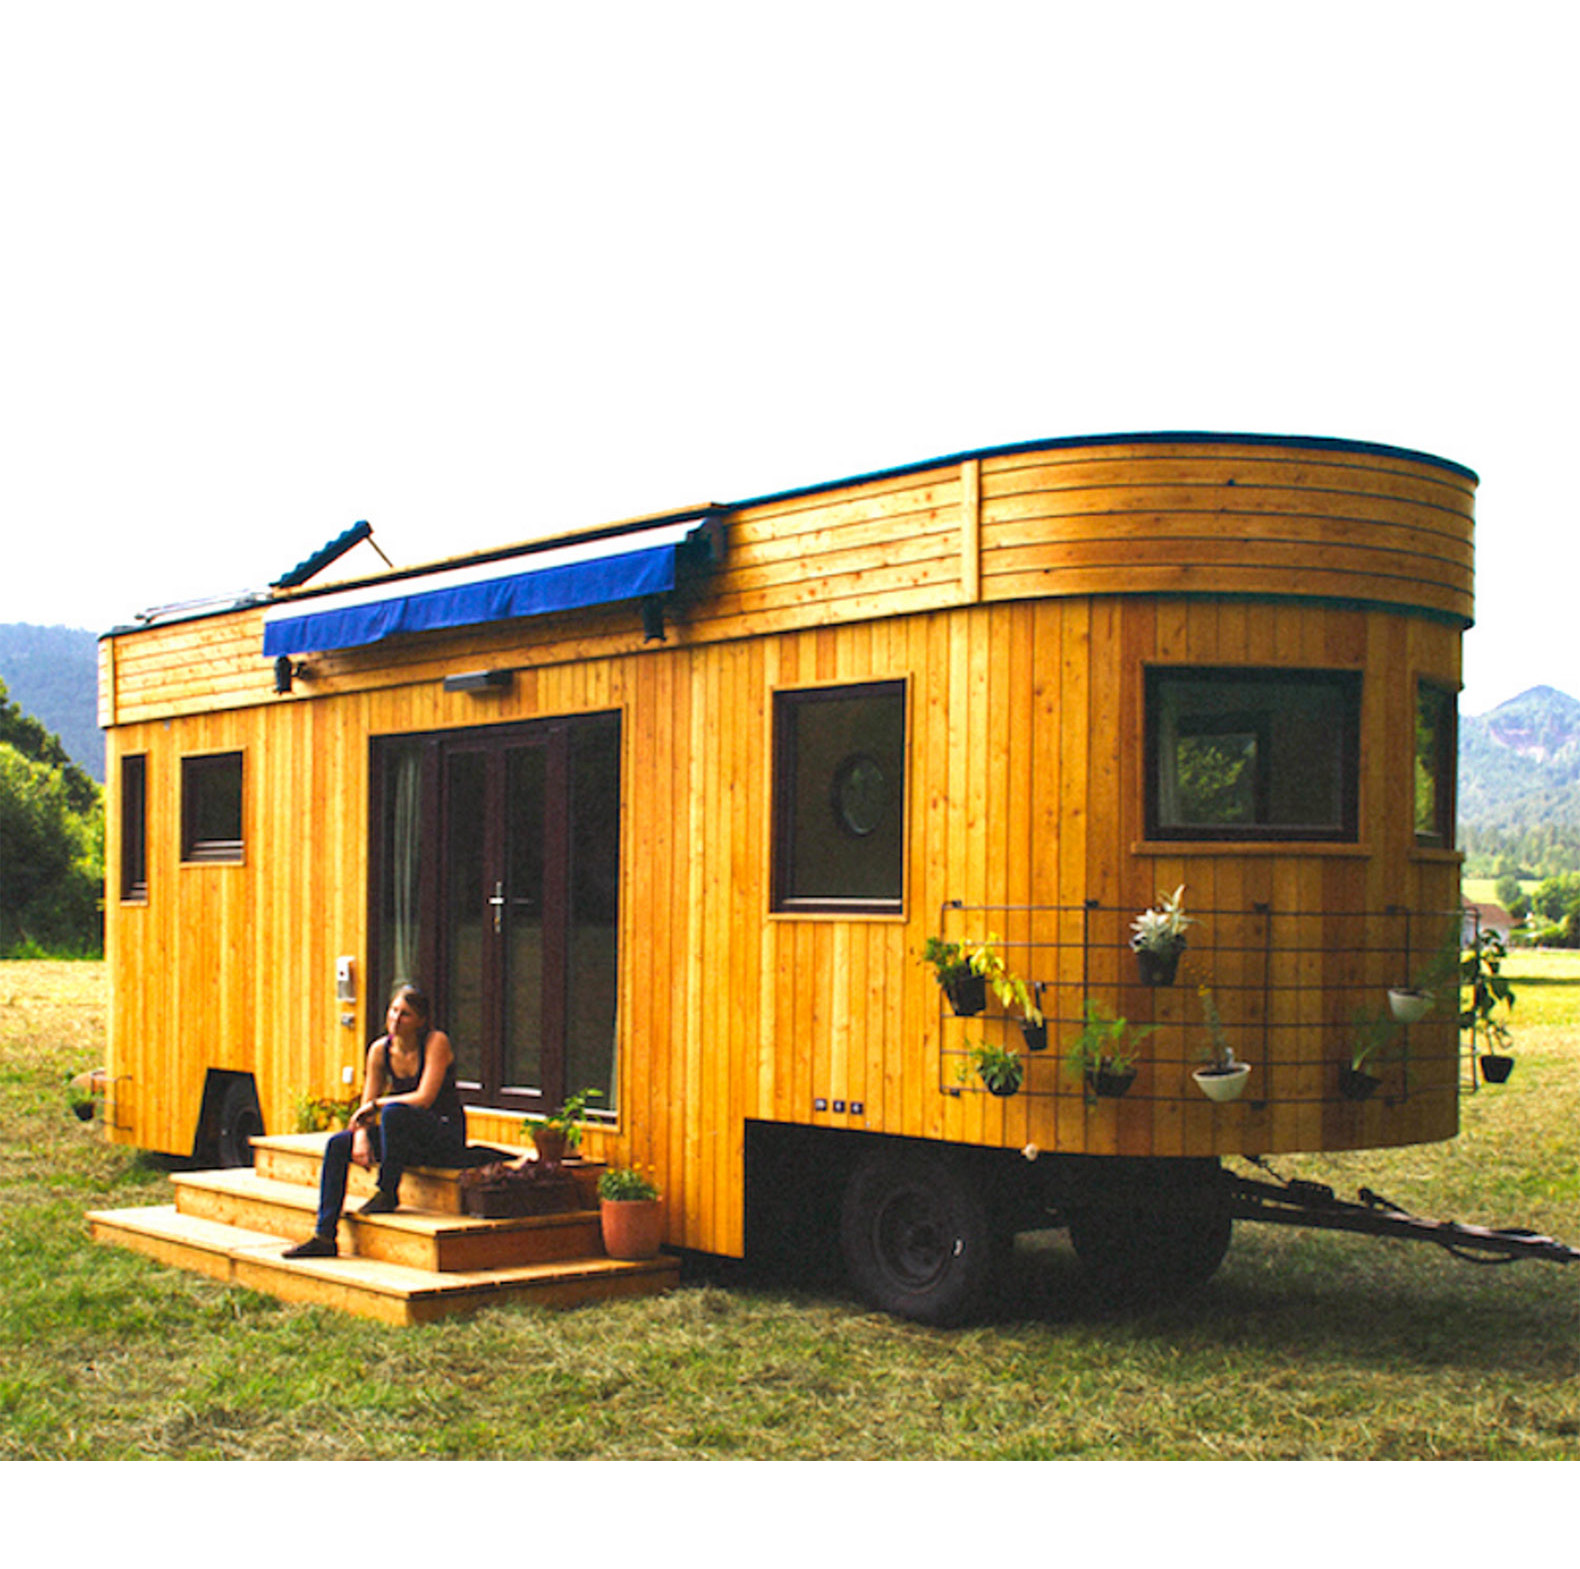 European Luxury Mini Movable Wood Houses Modular Small Mobile Homes Tiny  Houses Prefab Trailer Homes For Sale   Buy Cheap Prefab Homes For  Sale,Cheap ...